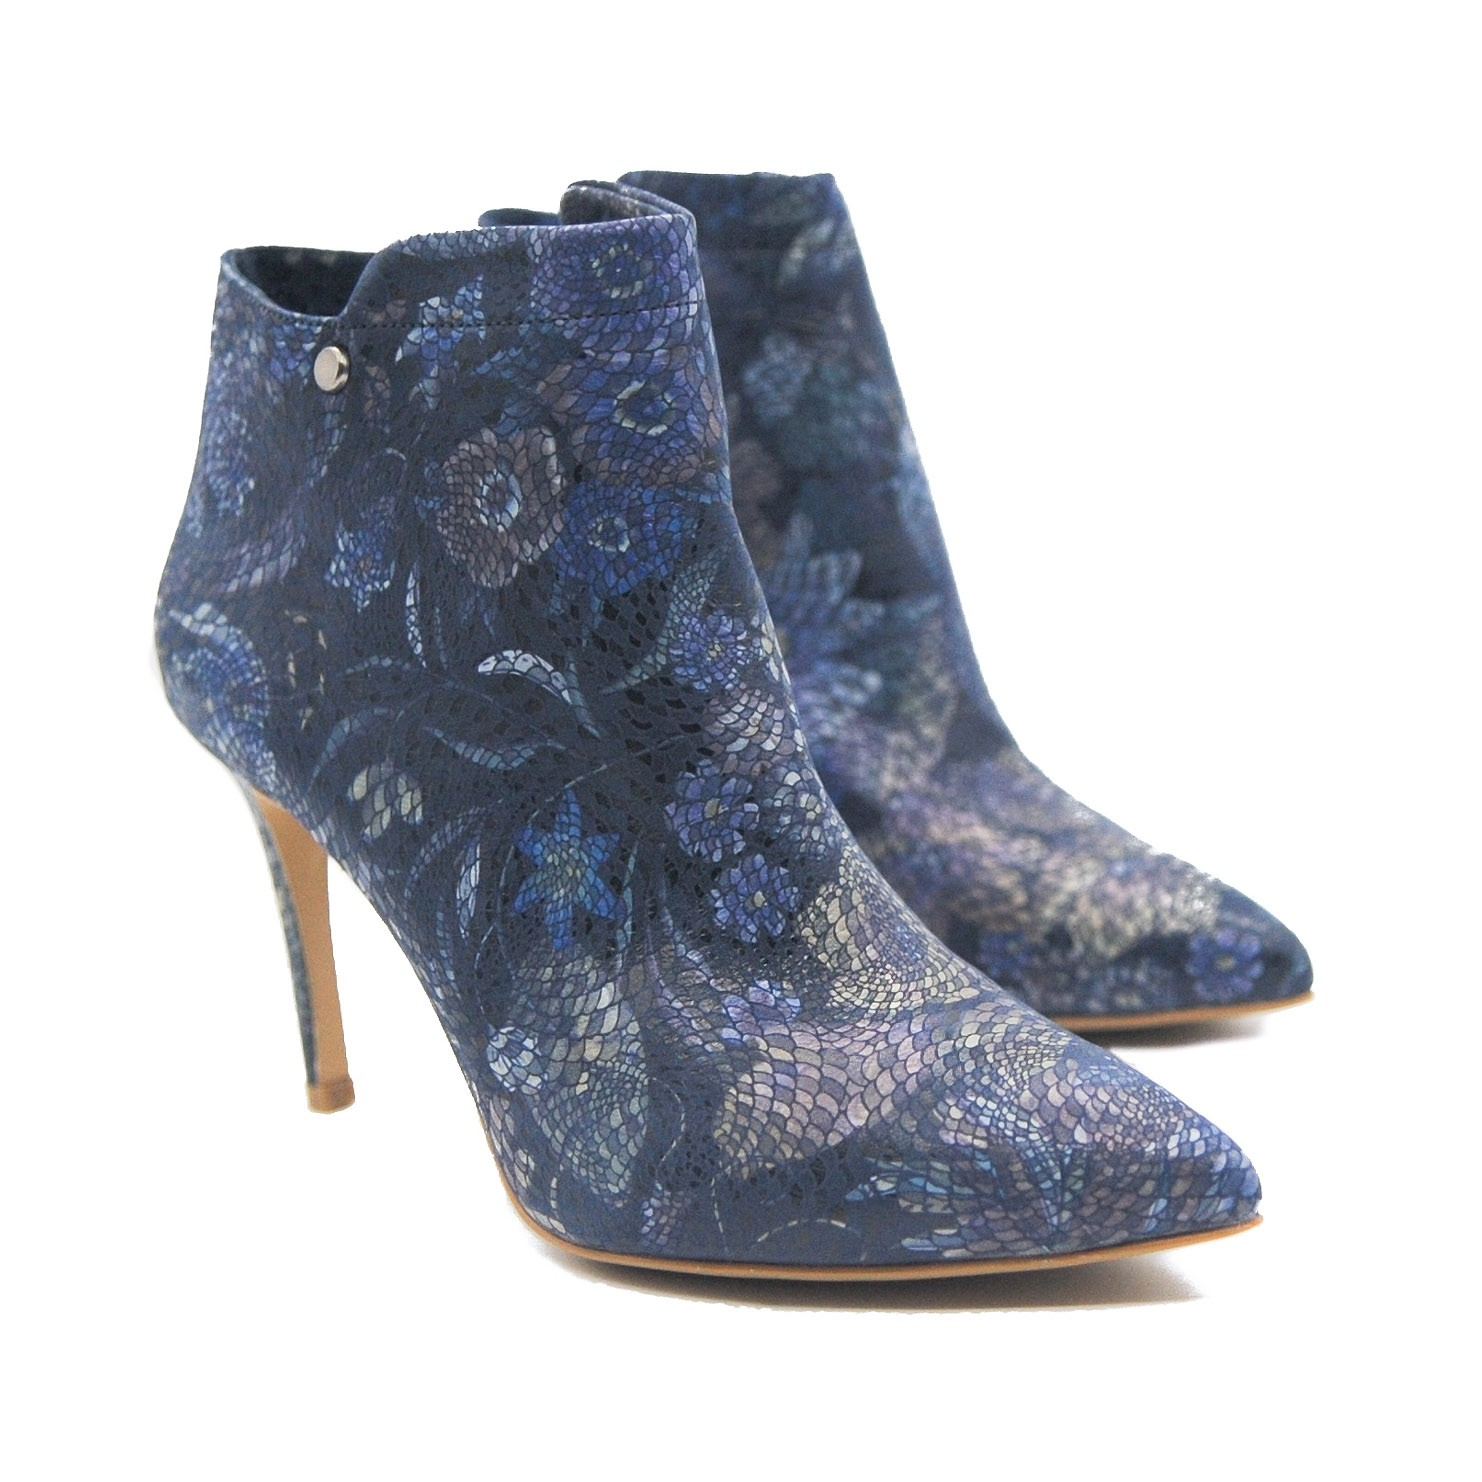 Goody2Shoes Ladies' Leather Flower Patterned Stiletto Blue and Purple Ankle Boots